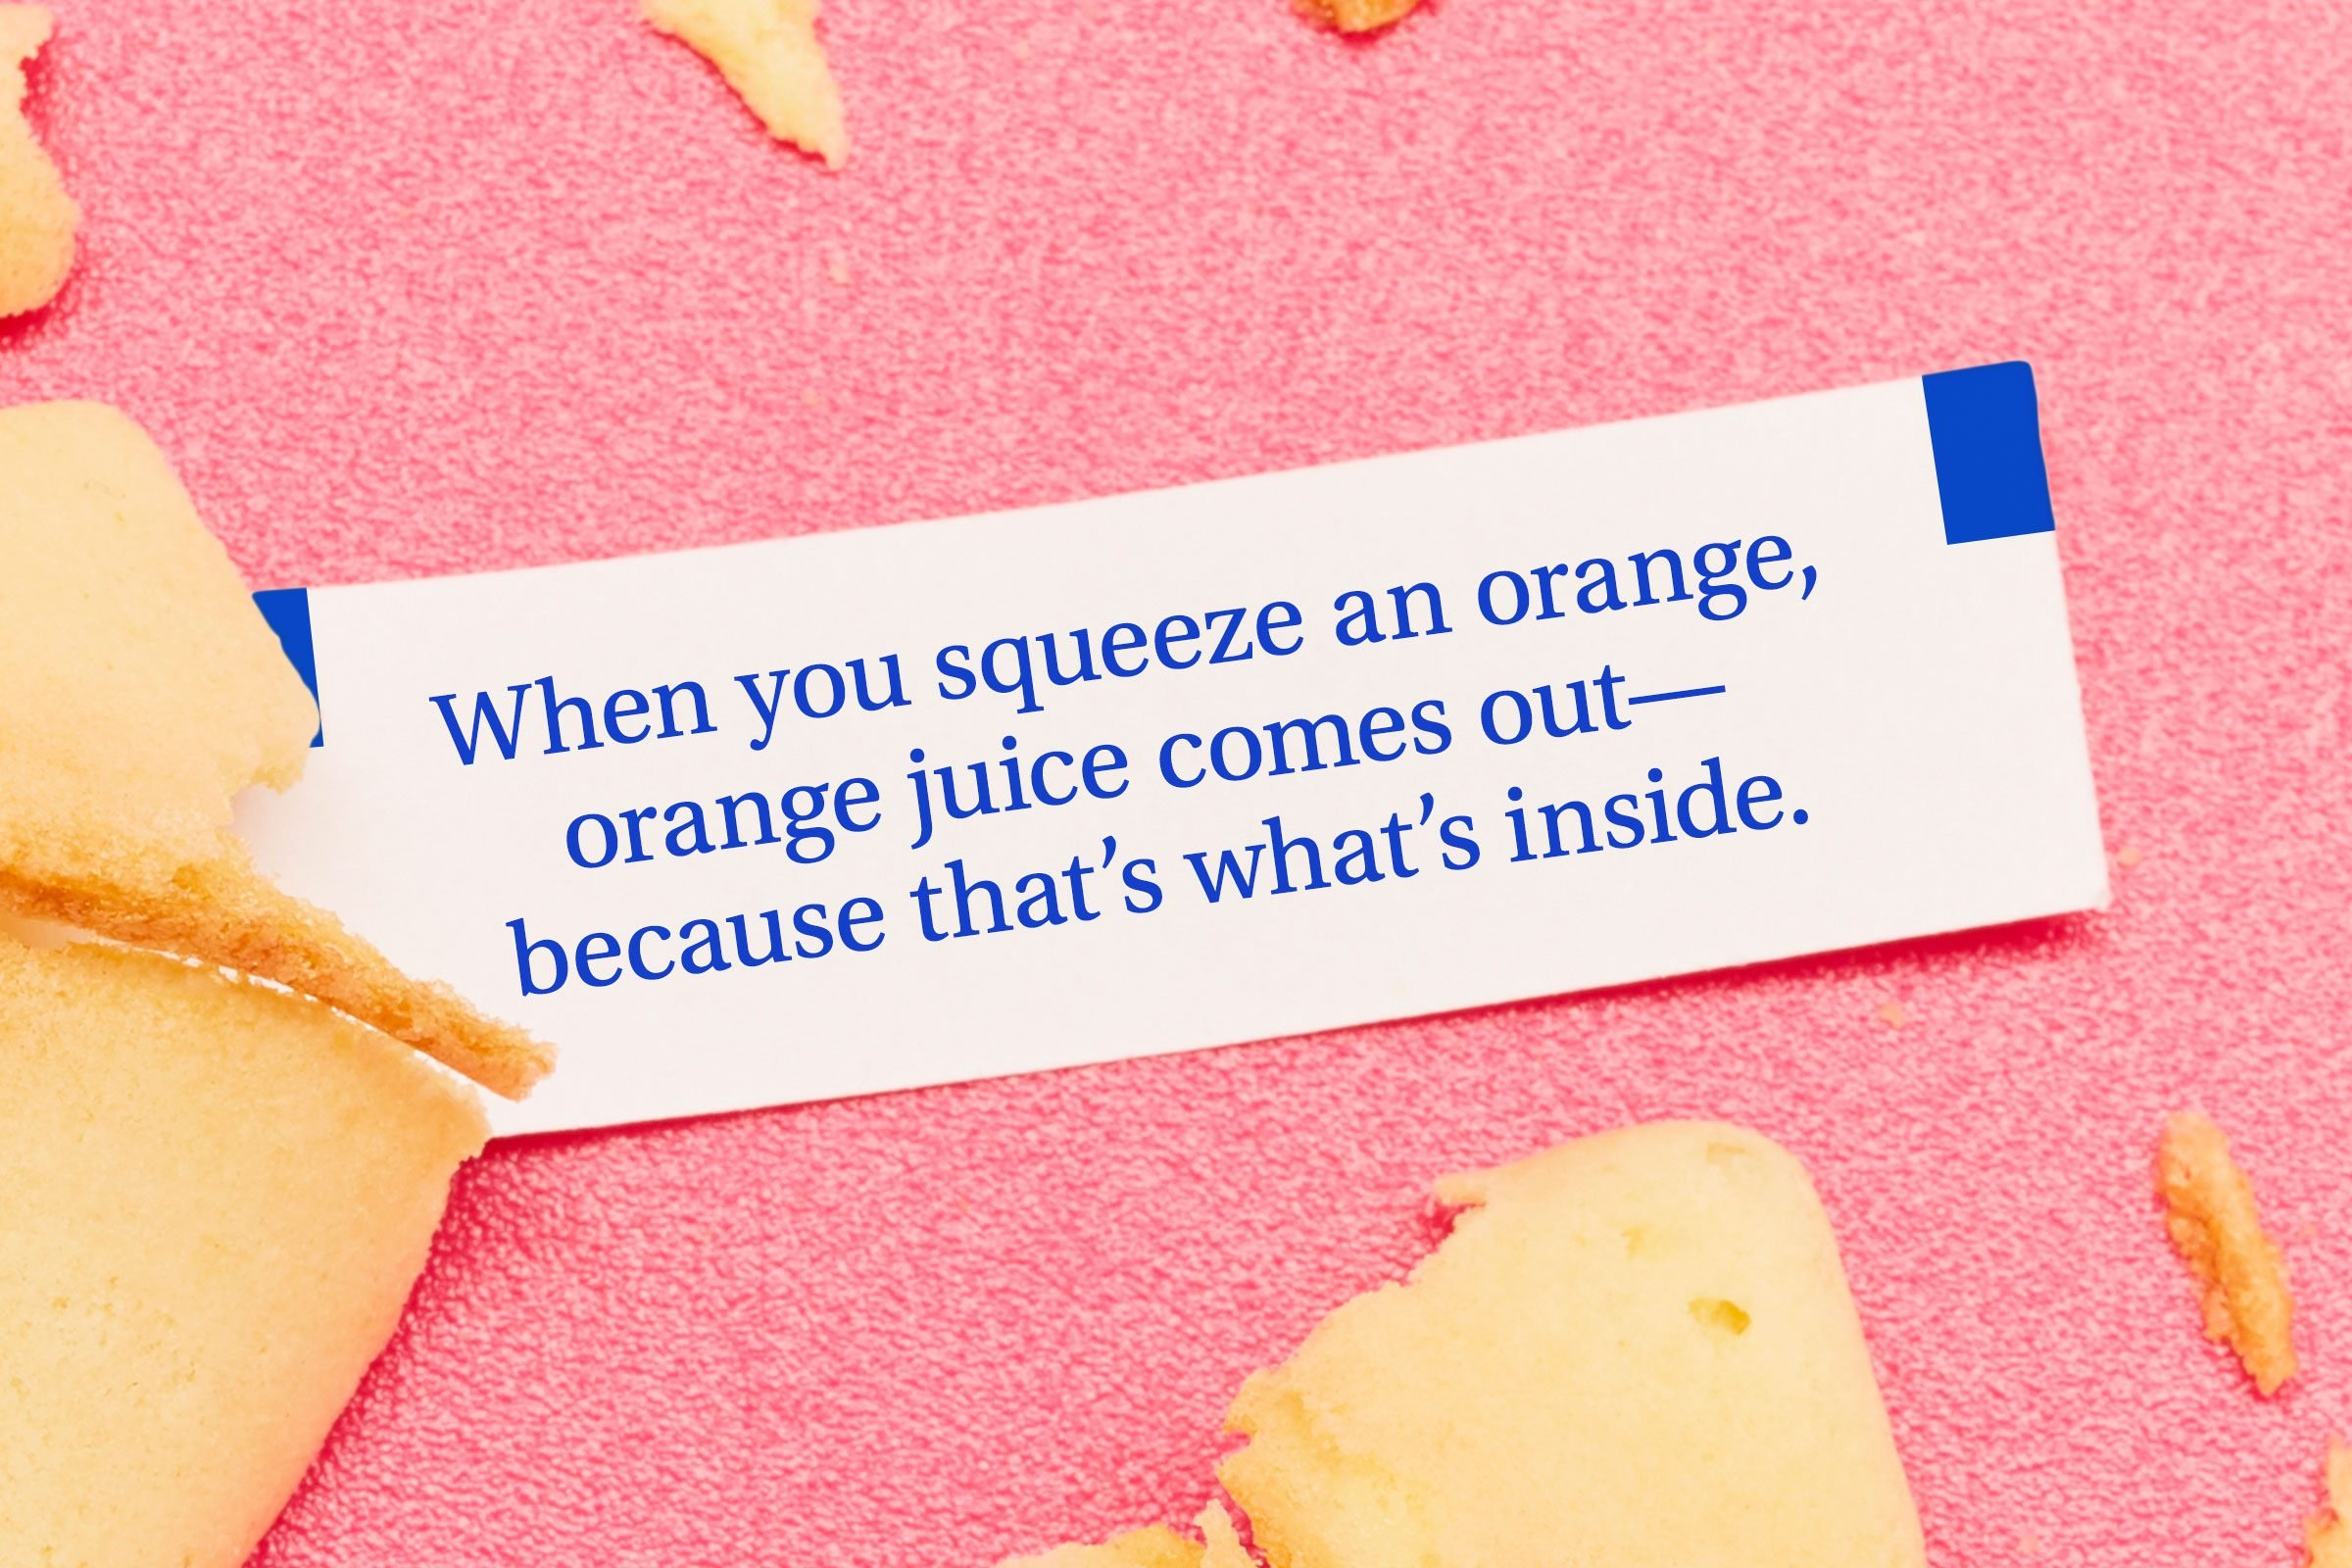 For image: When you squeeze an orange, orange juice comes out—because that's what's inside.